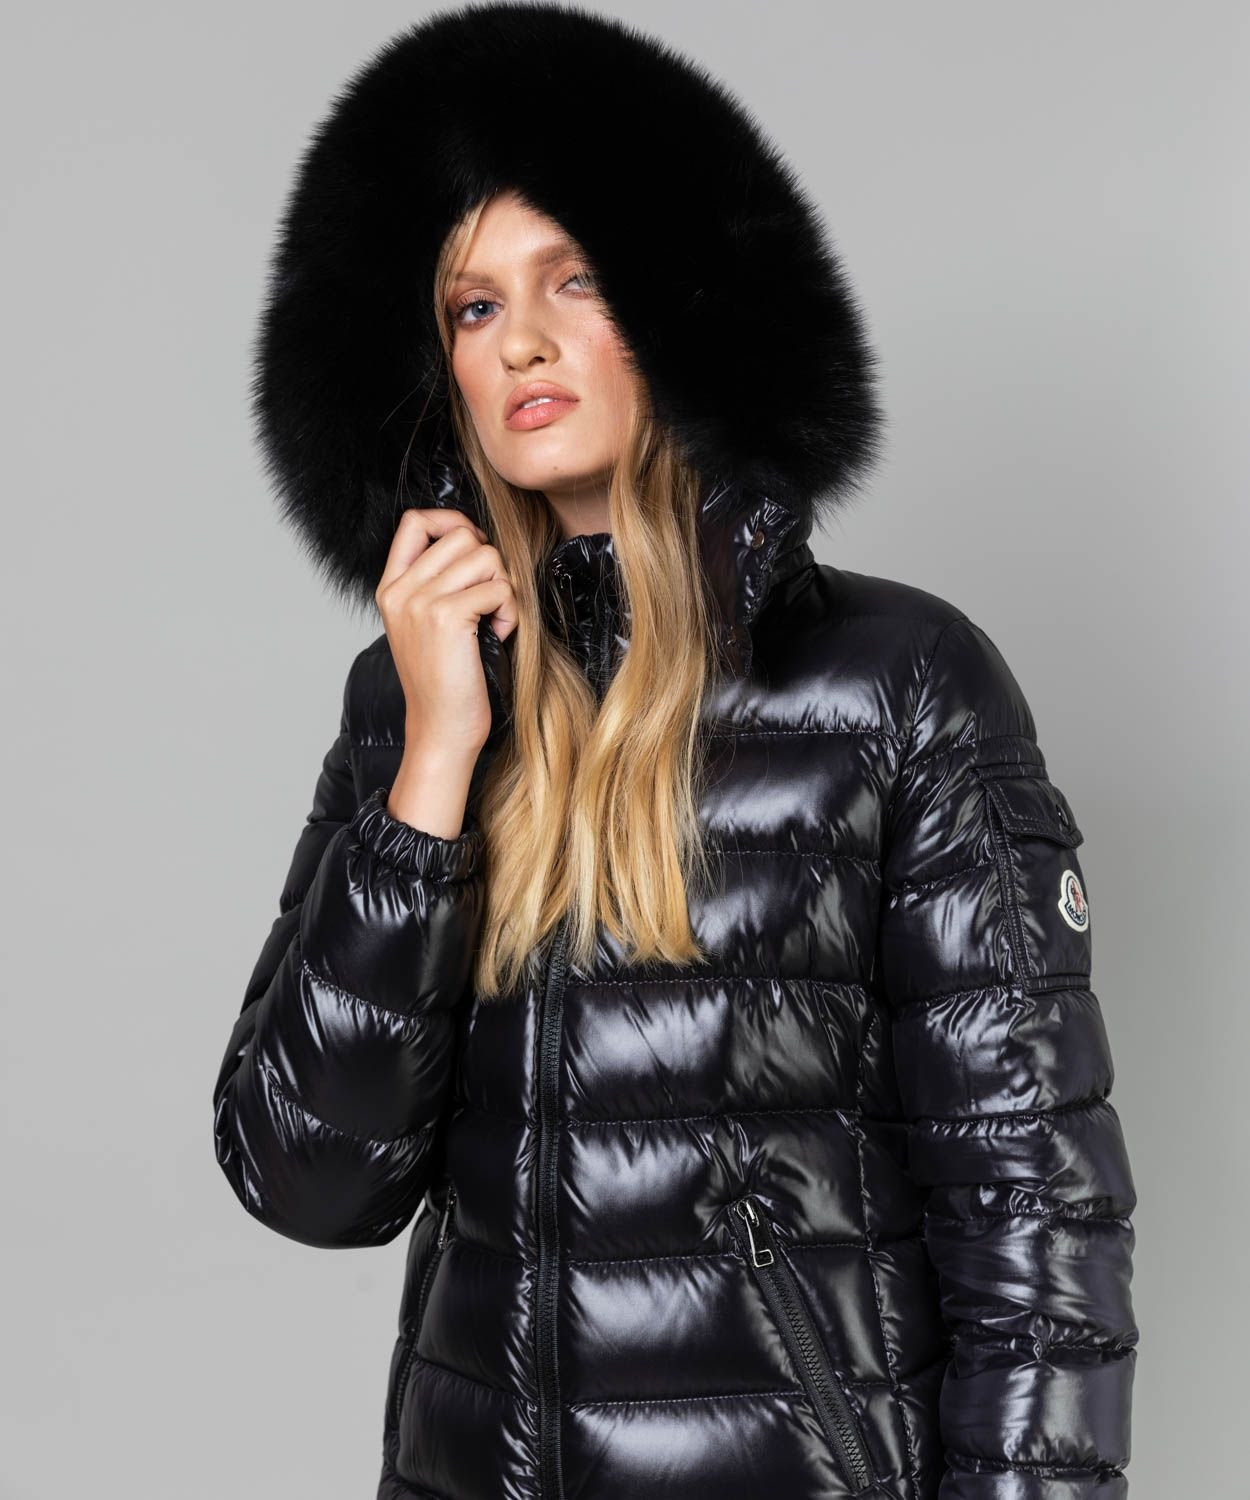 Women's Hooded Fur Badyfur Jacket